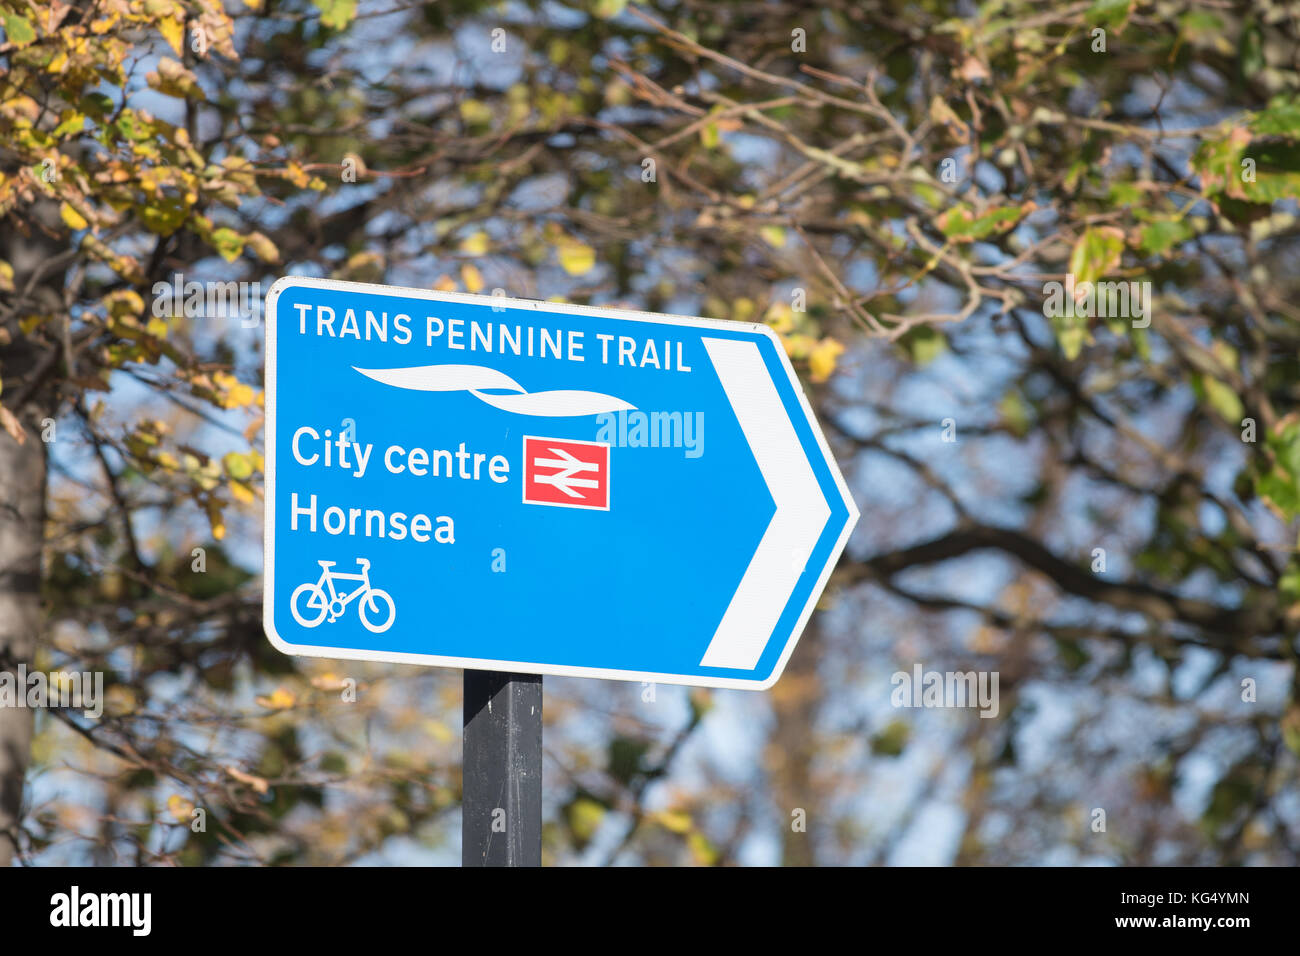 Trans Pennine Trail  cycle trail sign in Hull city centre, England, UK - Stock Image